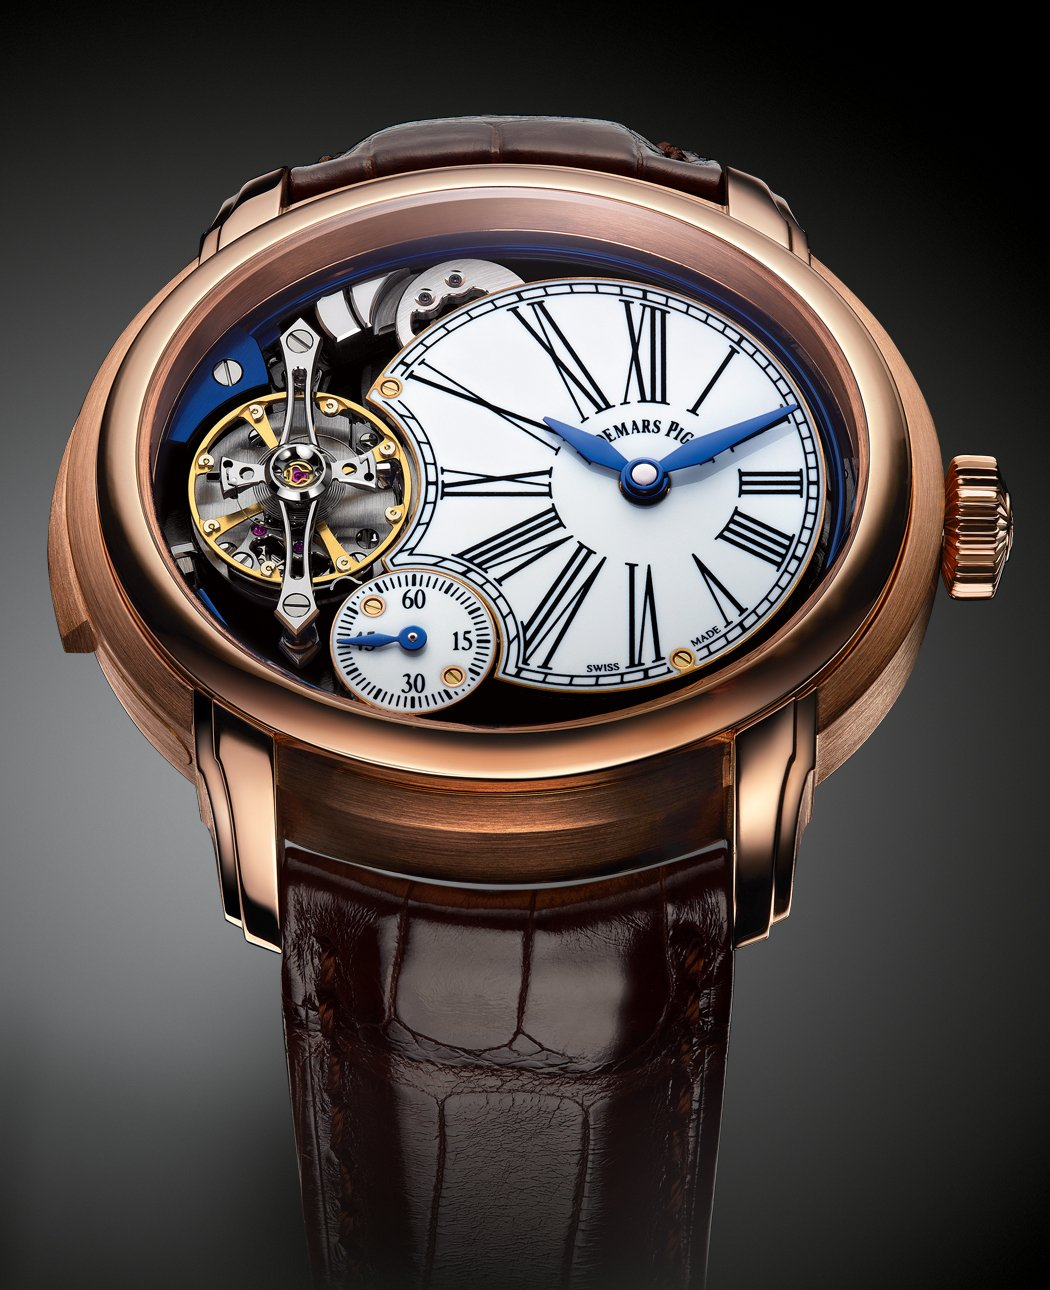 MILLENARY MINUTE REPEATER de Audemars Piguet